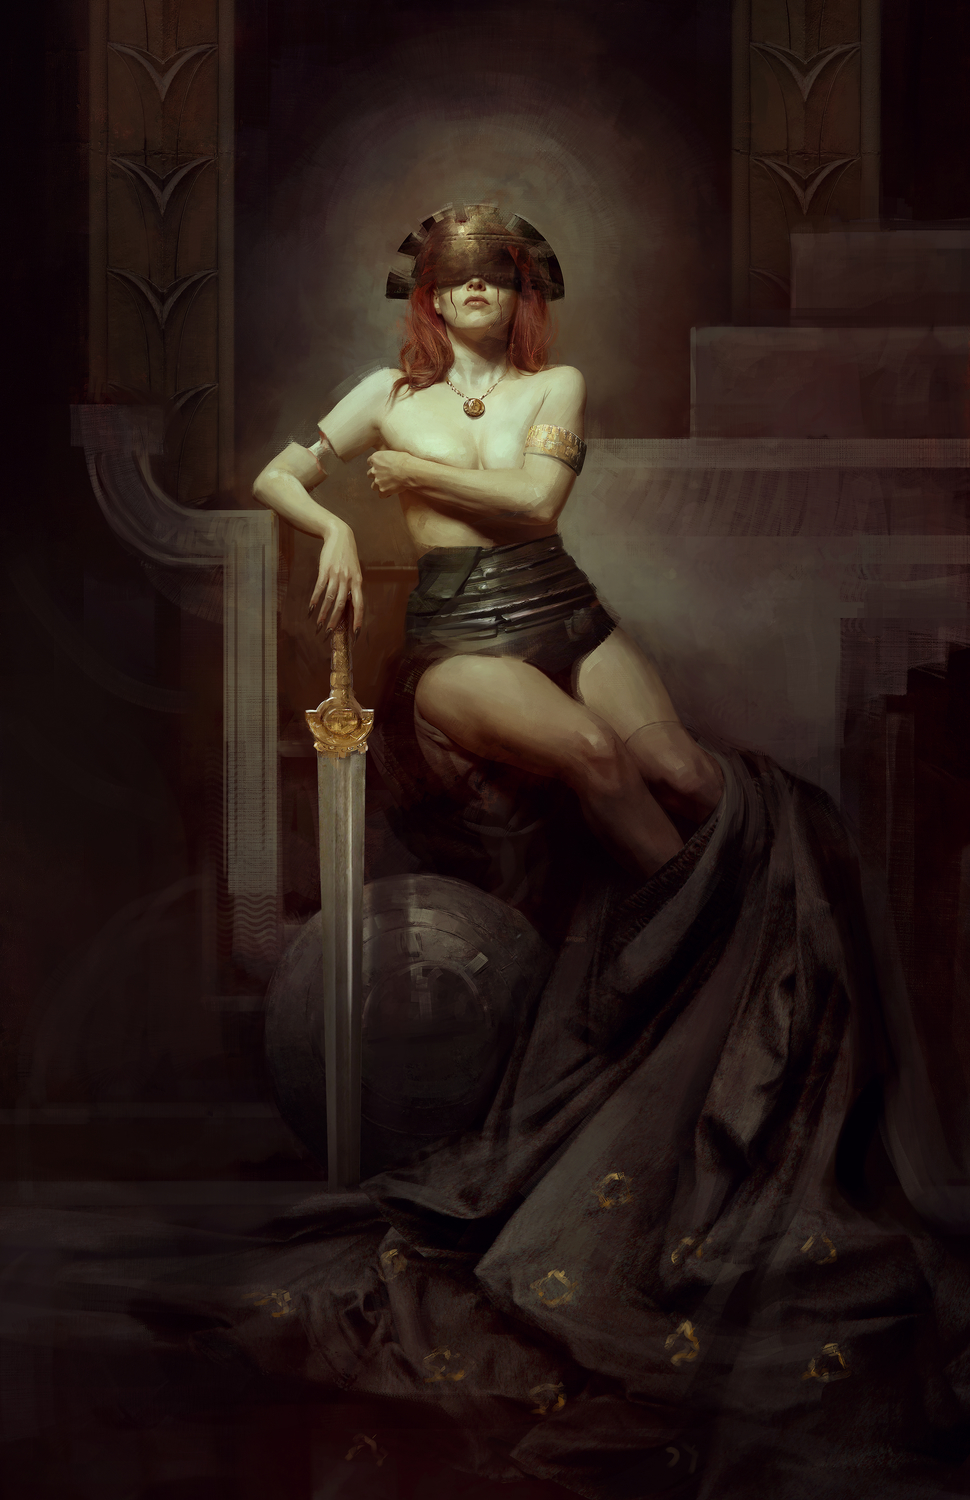 Shaparaah Artwork by Bastien Lecouffe Deharme